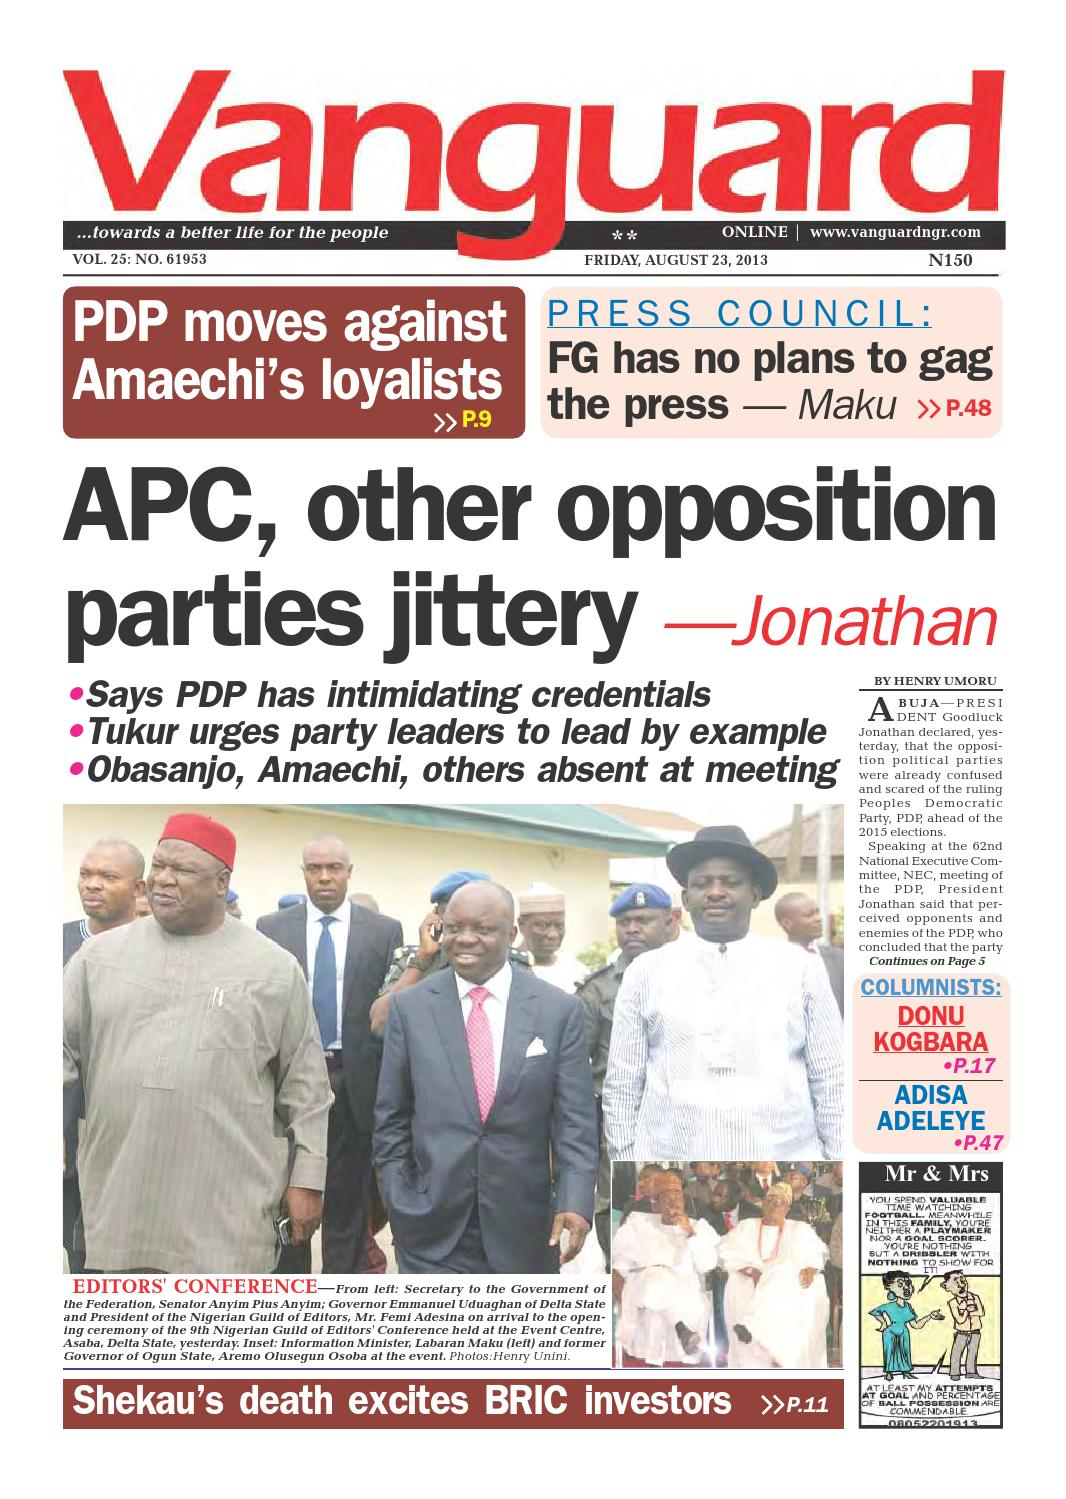 APC, other opposition parties jittery —Jonathan by Vanguard Media